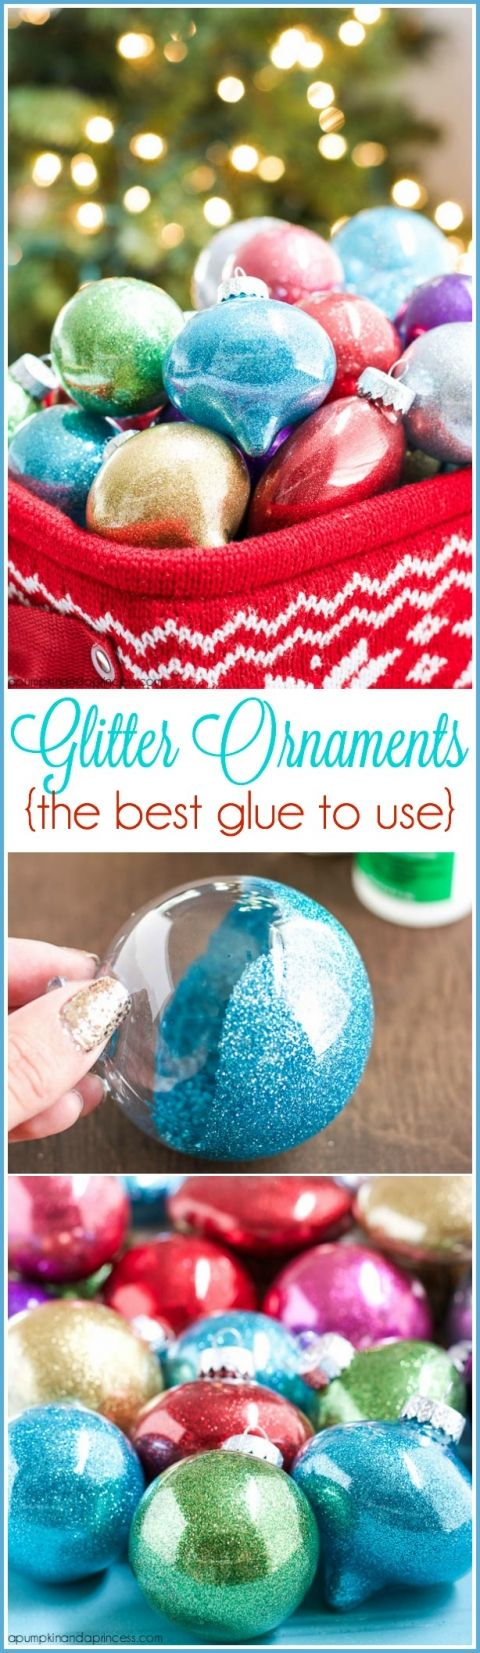 Diy Glitter Ornaments Best Glue To Use Christmas Crafts Diy Christmas Ornaments Glitter Christmas